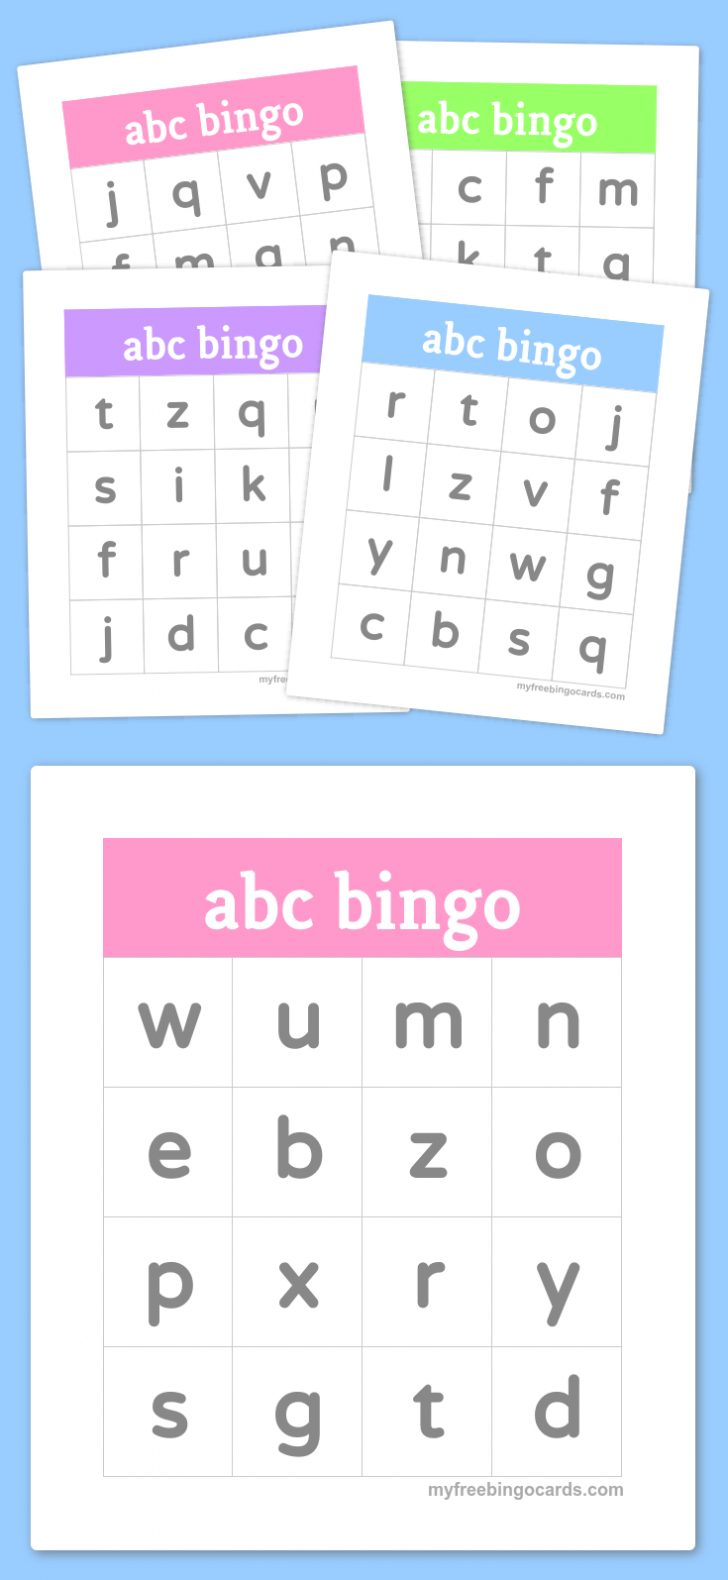 Alphabet Bingo Printable Cards Free